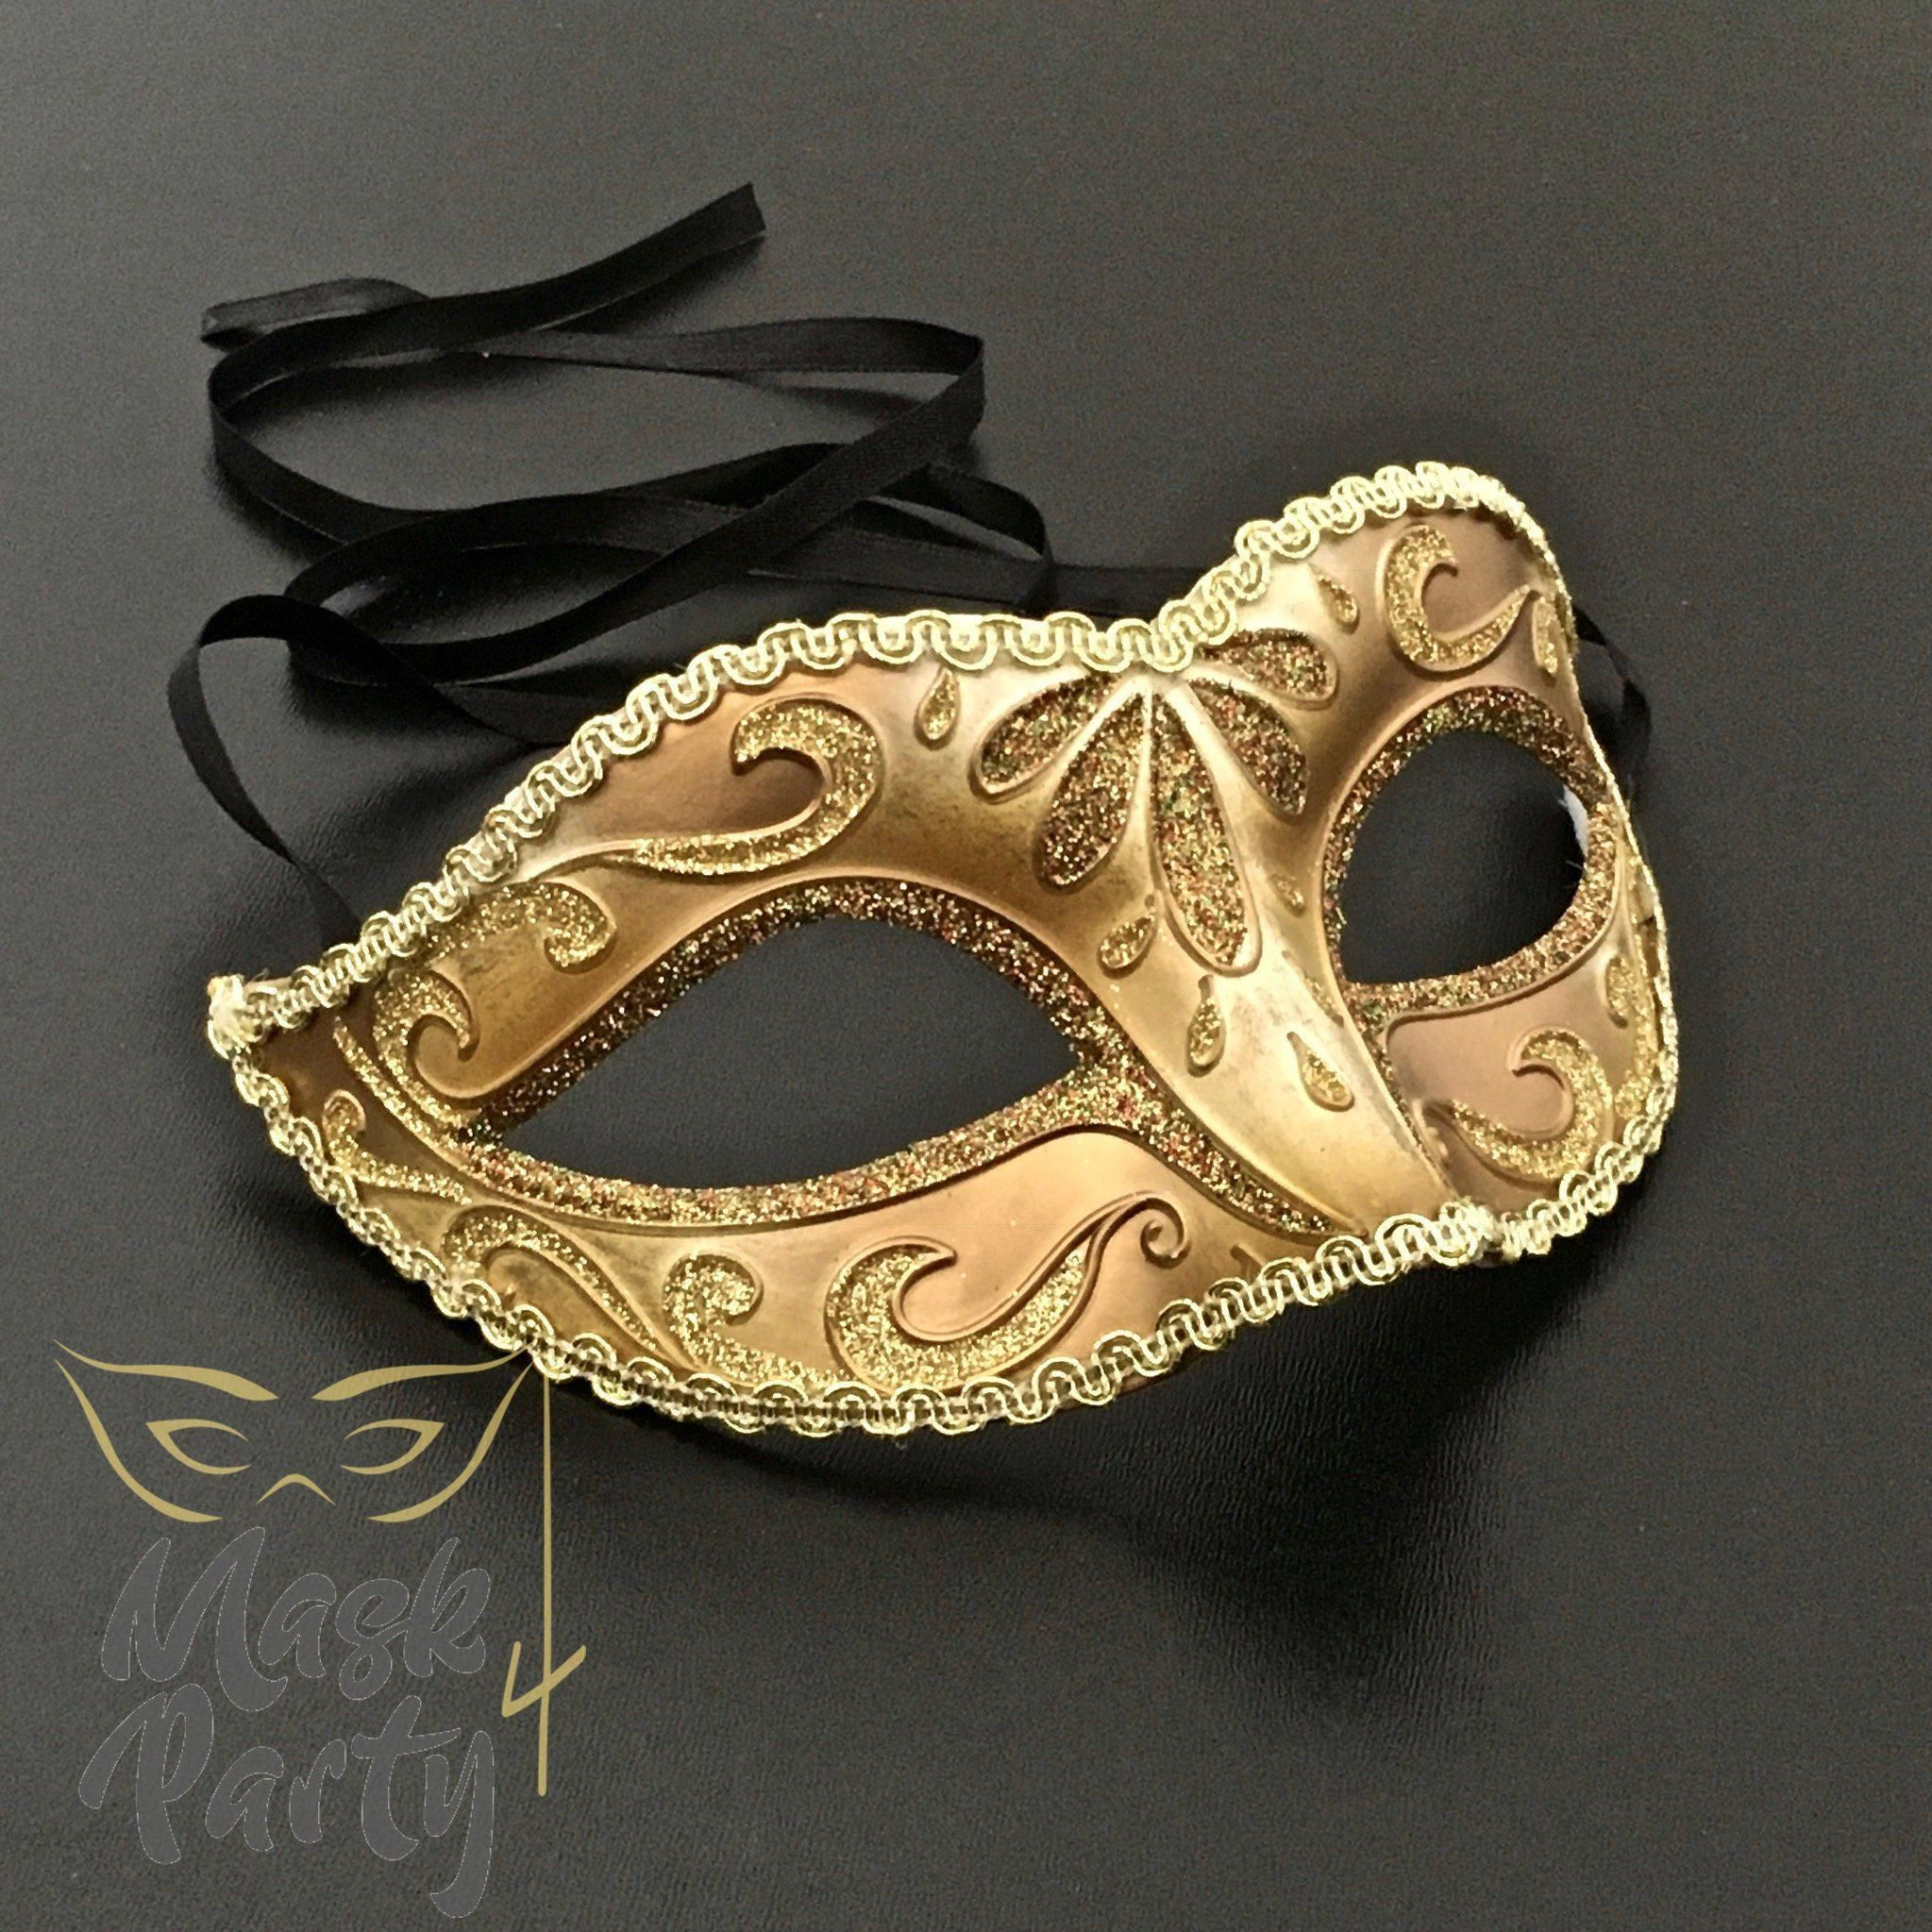 Unisex Mens Masquerade music notes mask Bachelor Party Halloween Costume Prom